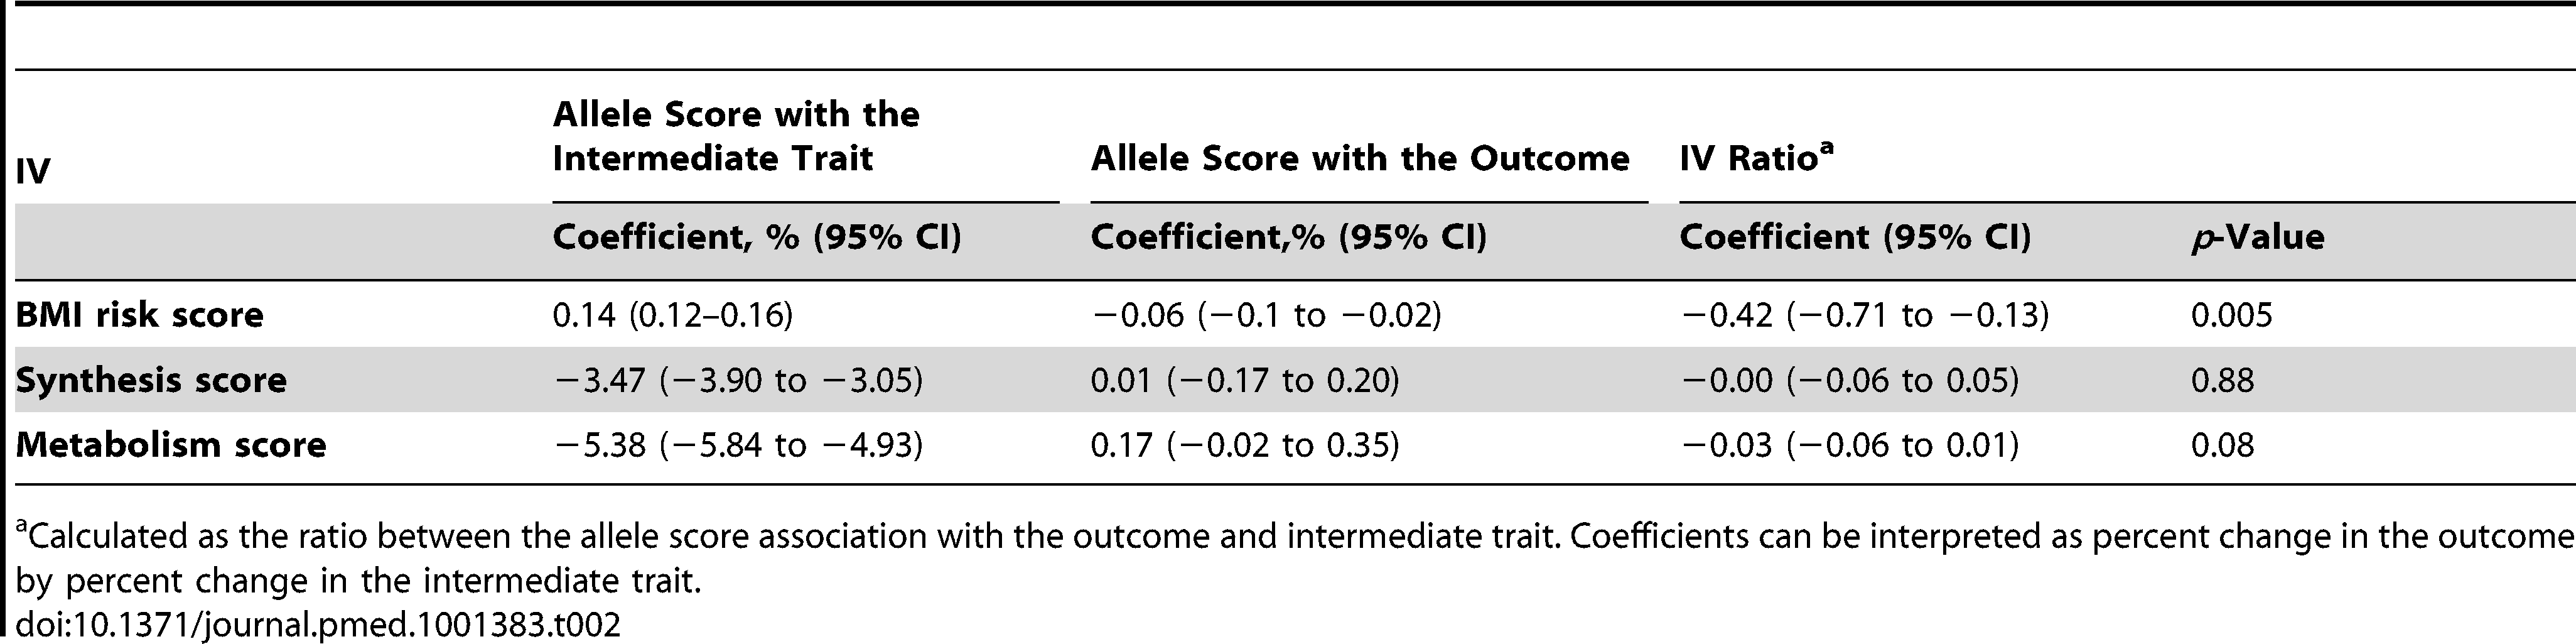 Summary of the coefficients used for IV ratio analyses.